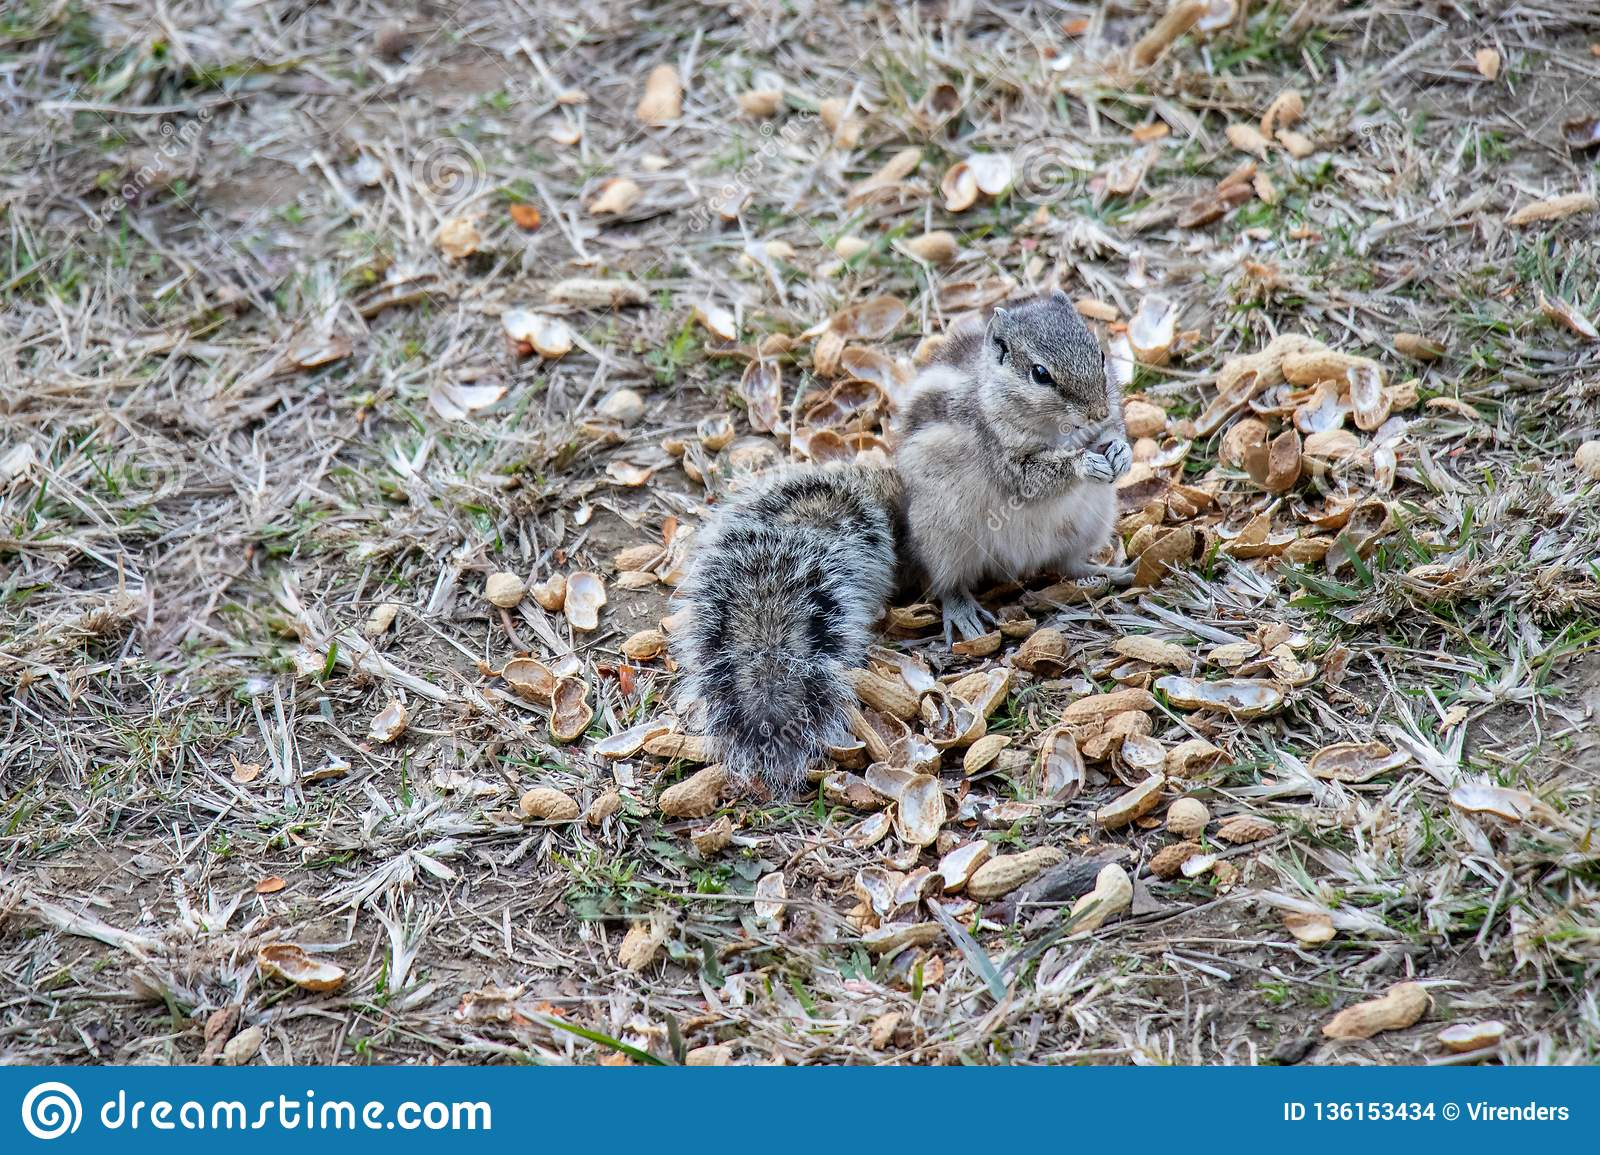 Squirrels eating peanuts outside